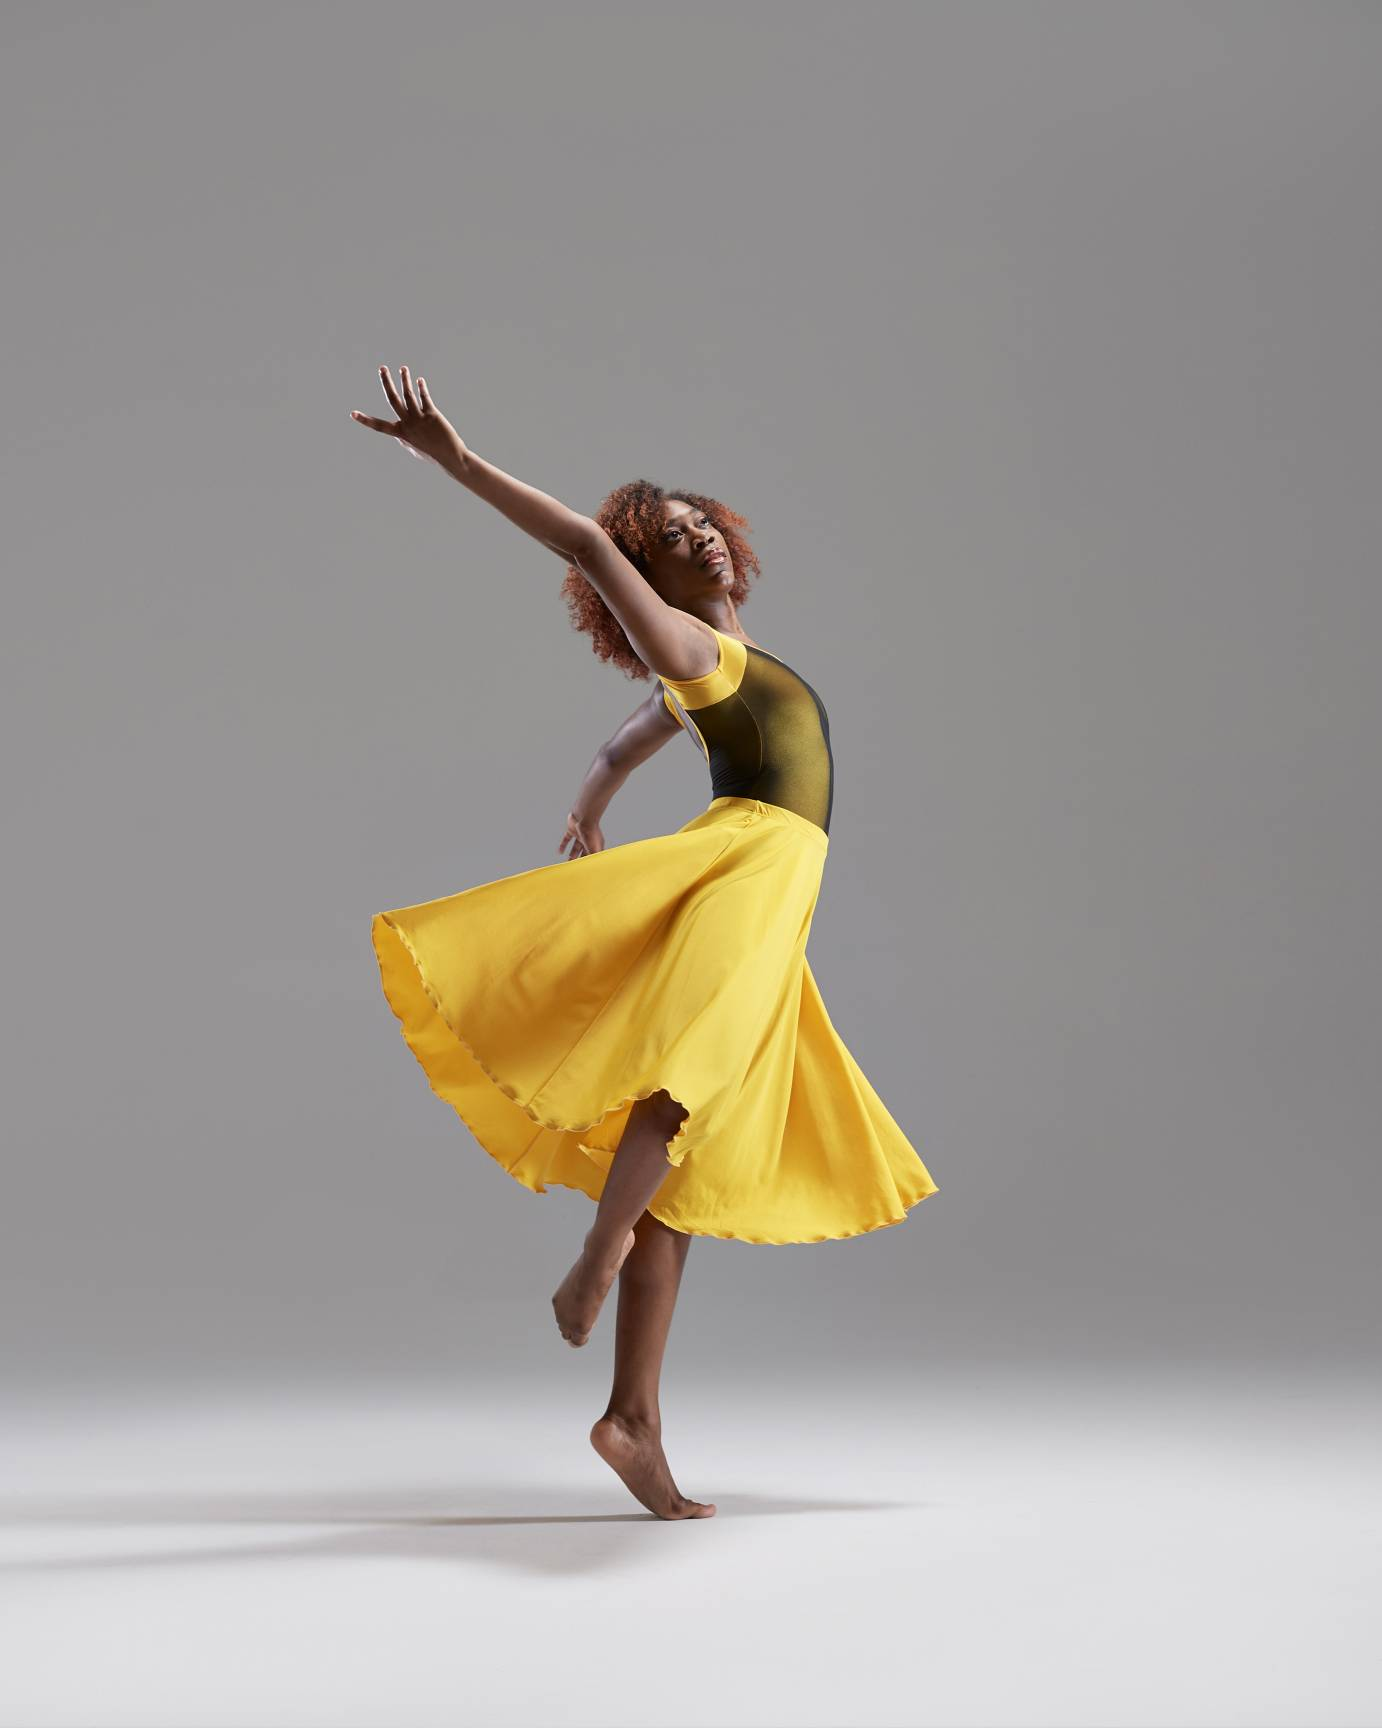 A young woman in a yellow dress swoops in an elegant pose